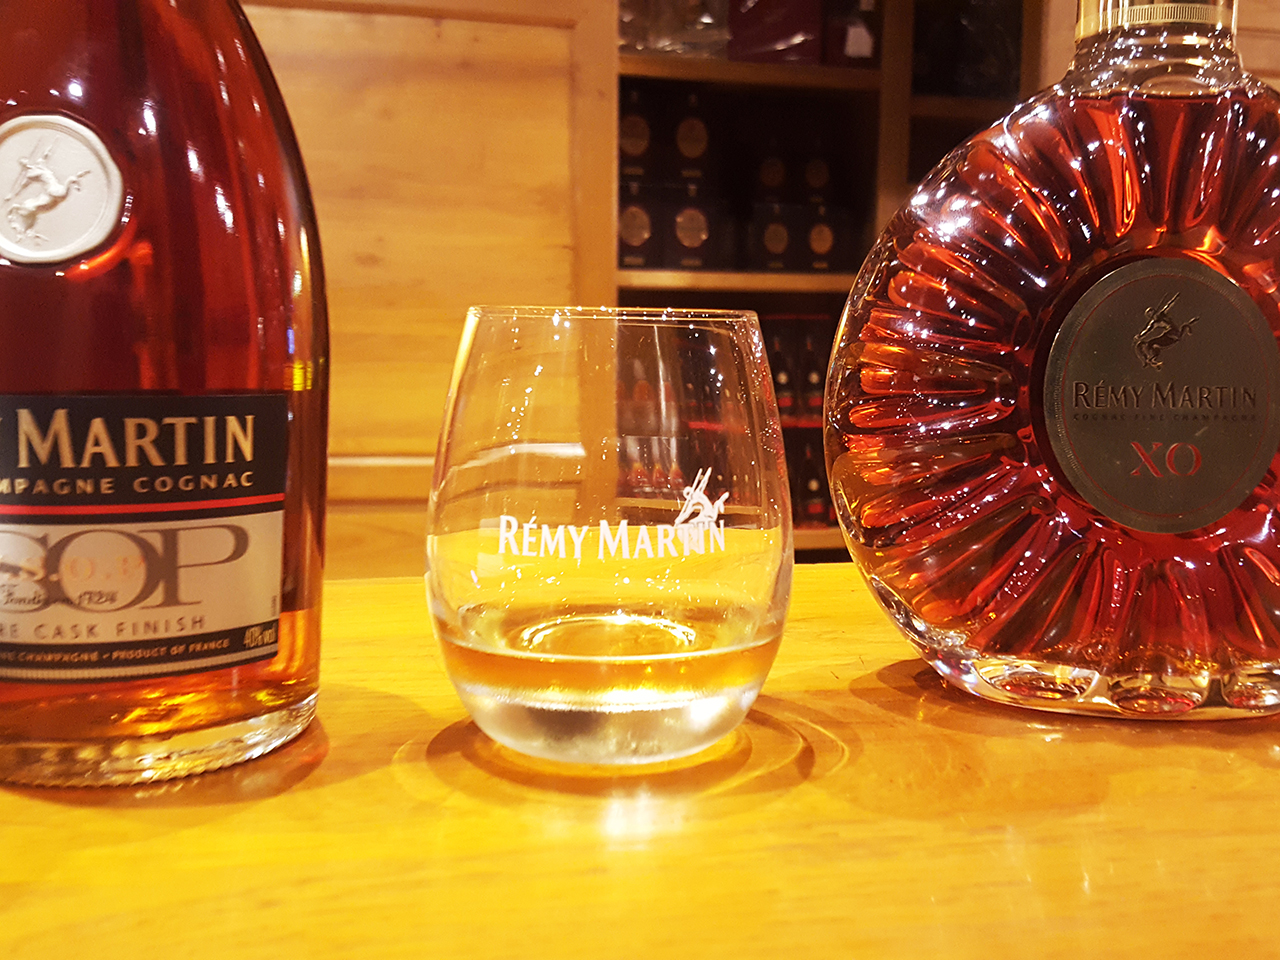 2018 06 26 02 Private Cognac Tasting tour Remy Martin